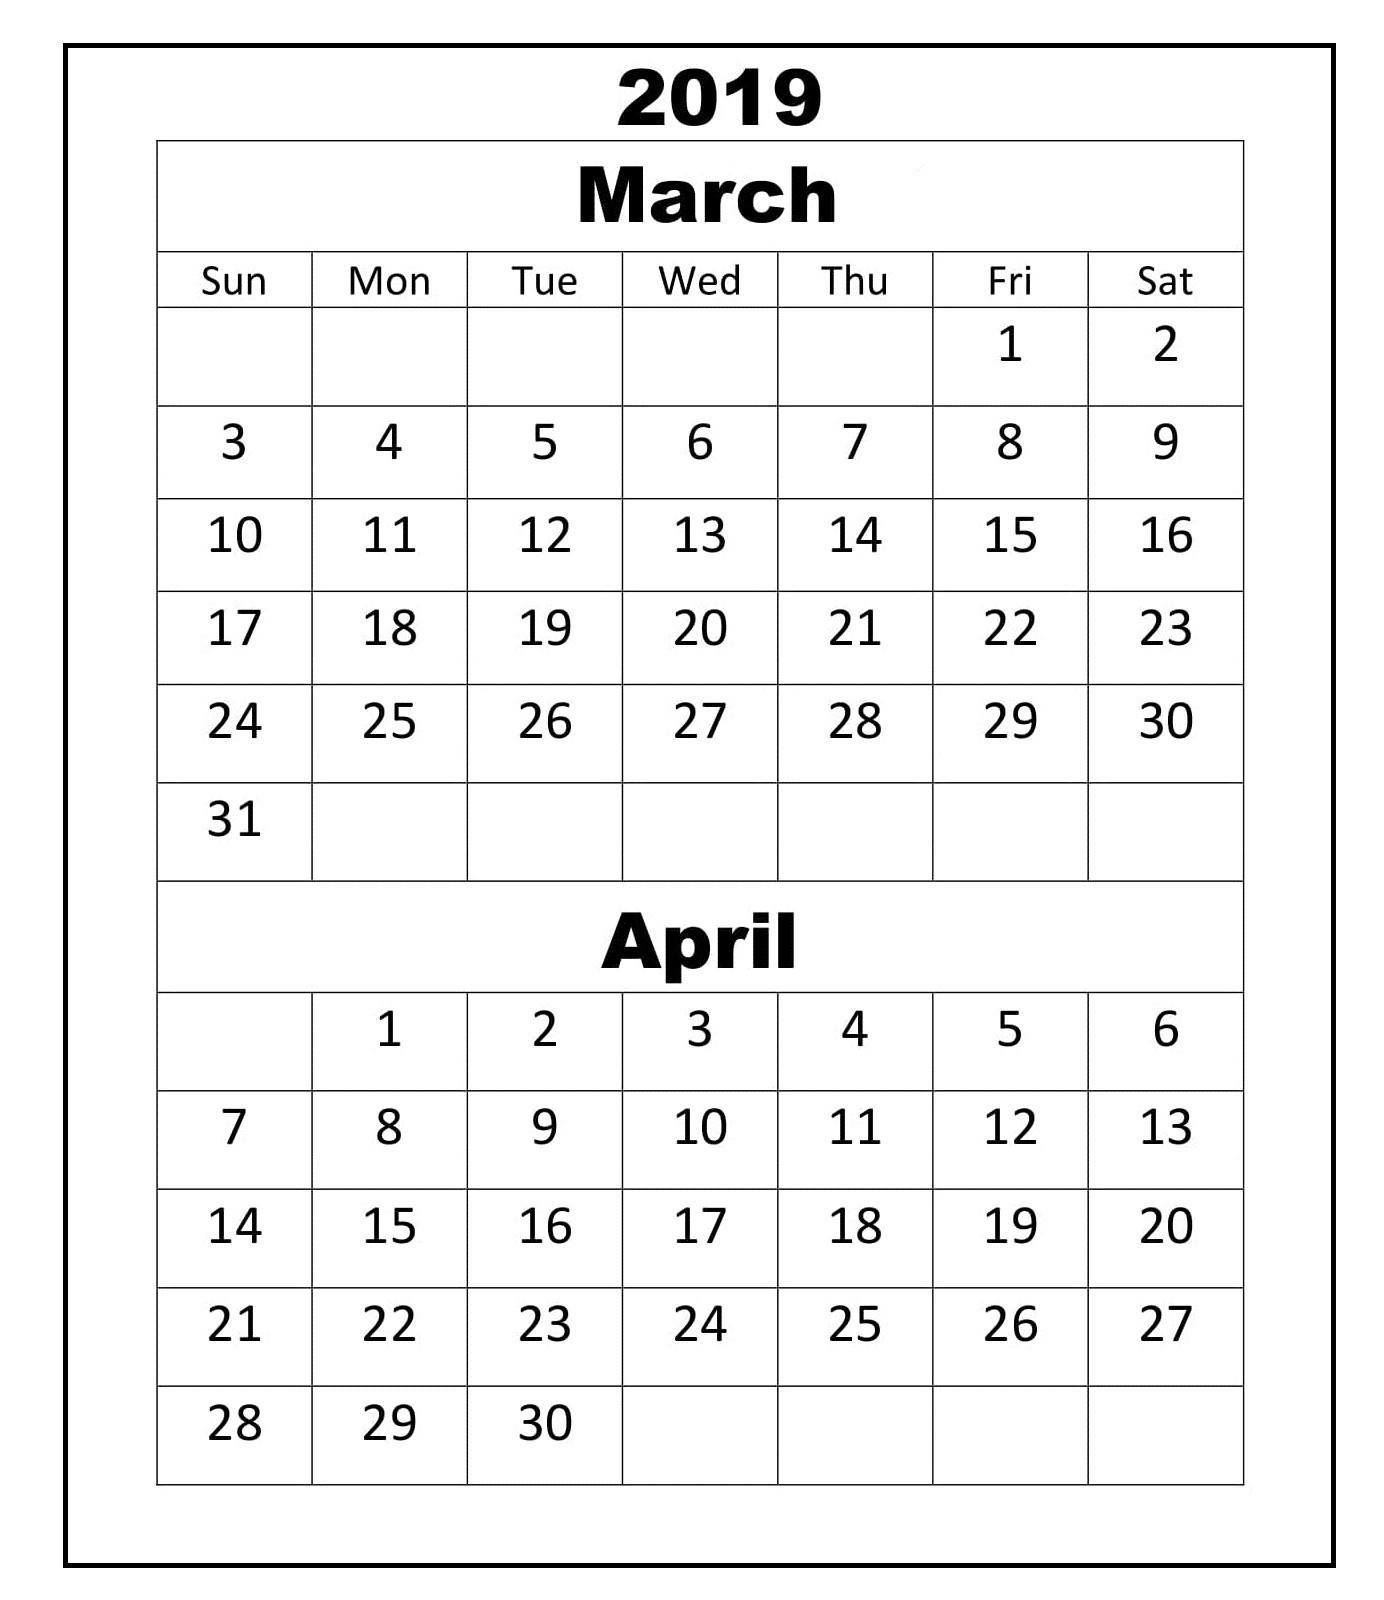 March Calendar 2019 Actual March April 2019 Calendar Printable Printables Calendars 2019 and Of March Calendar 2019 Más Populares March 2019 Calendar Pdf Word Excel